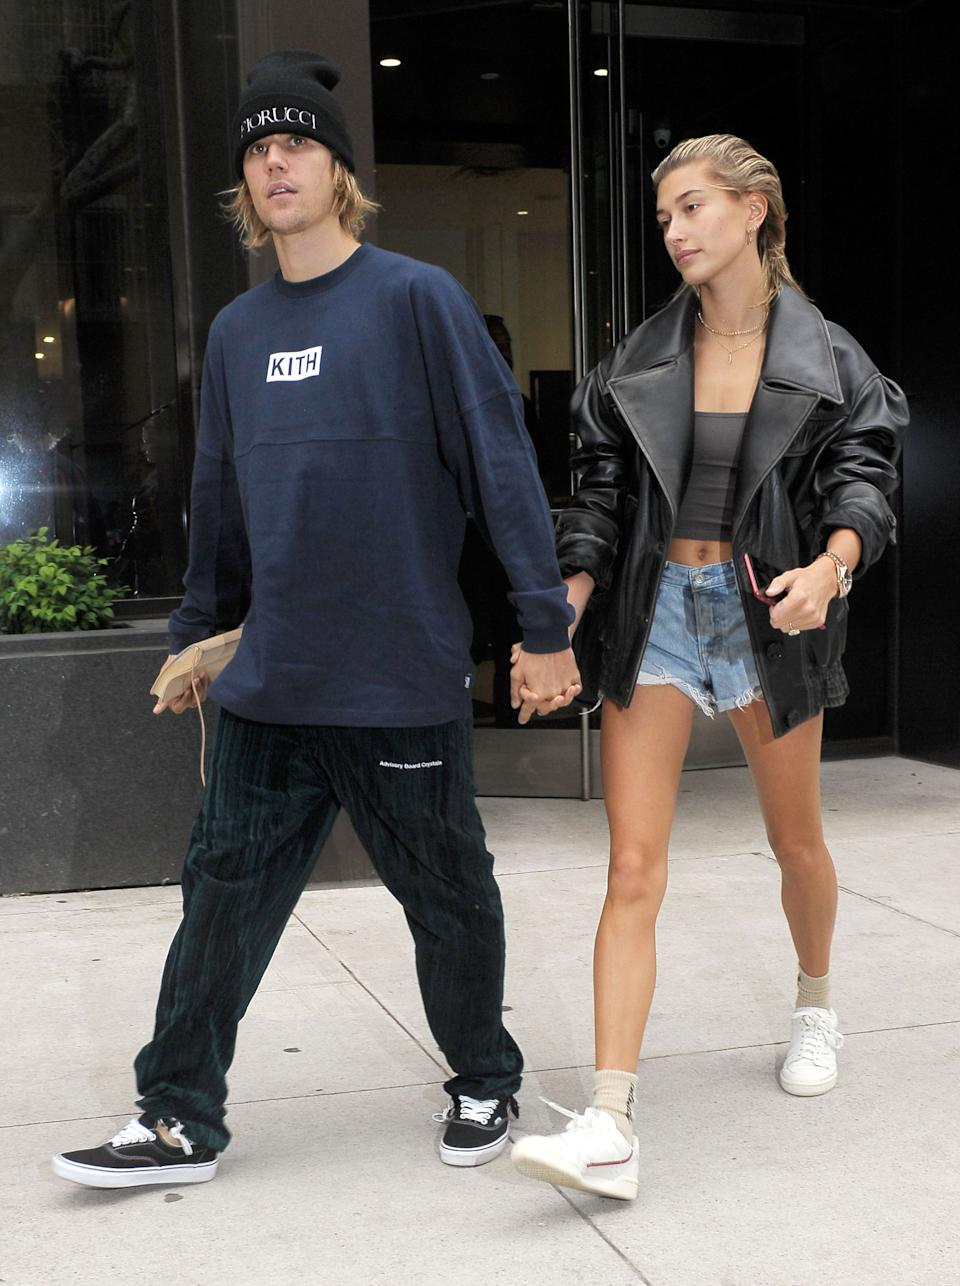 Hailey Baldwin wearing the Adidas trainers in September 14, 2018. [Photo: Getty]